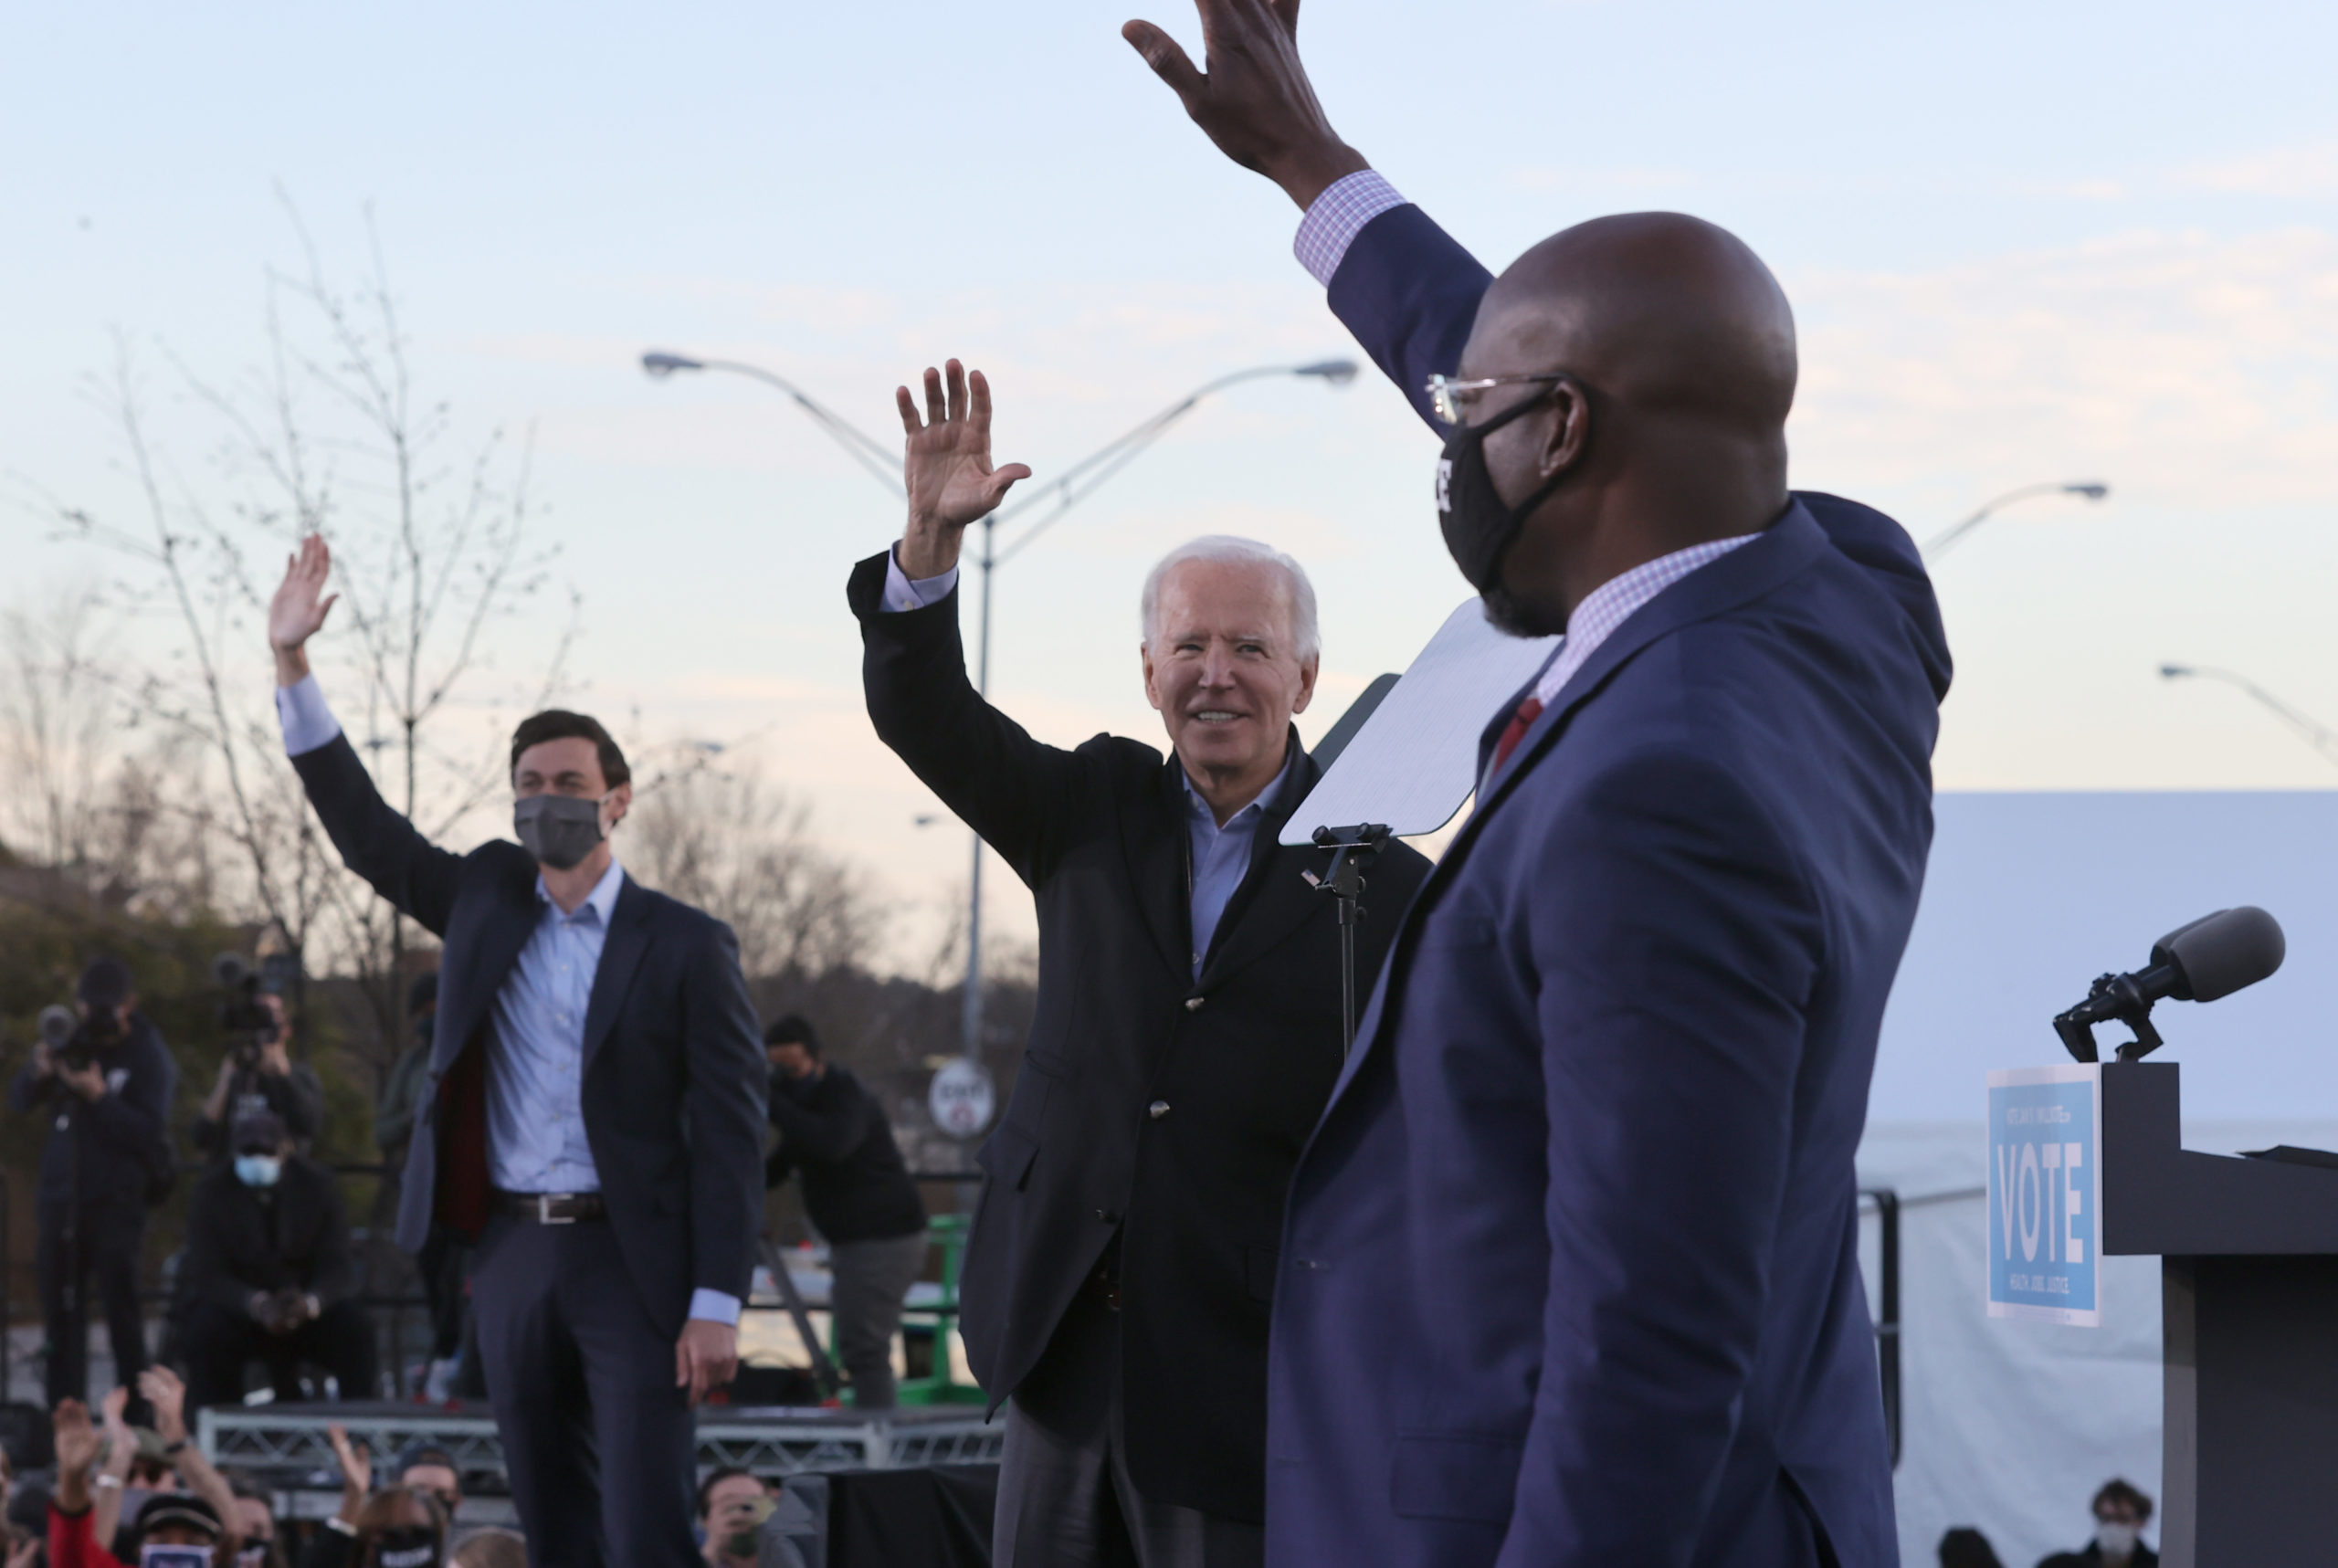 President-elect Joe Biden along with Jon Ossoff and Rev. Raphael Warnock greet supporters during a campaign rally Monday in Atlanta, Georgia. (Chip Somodevilla/Getty Images)